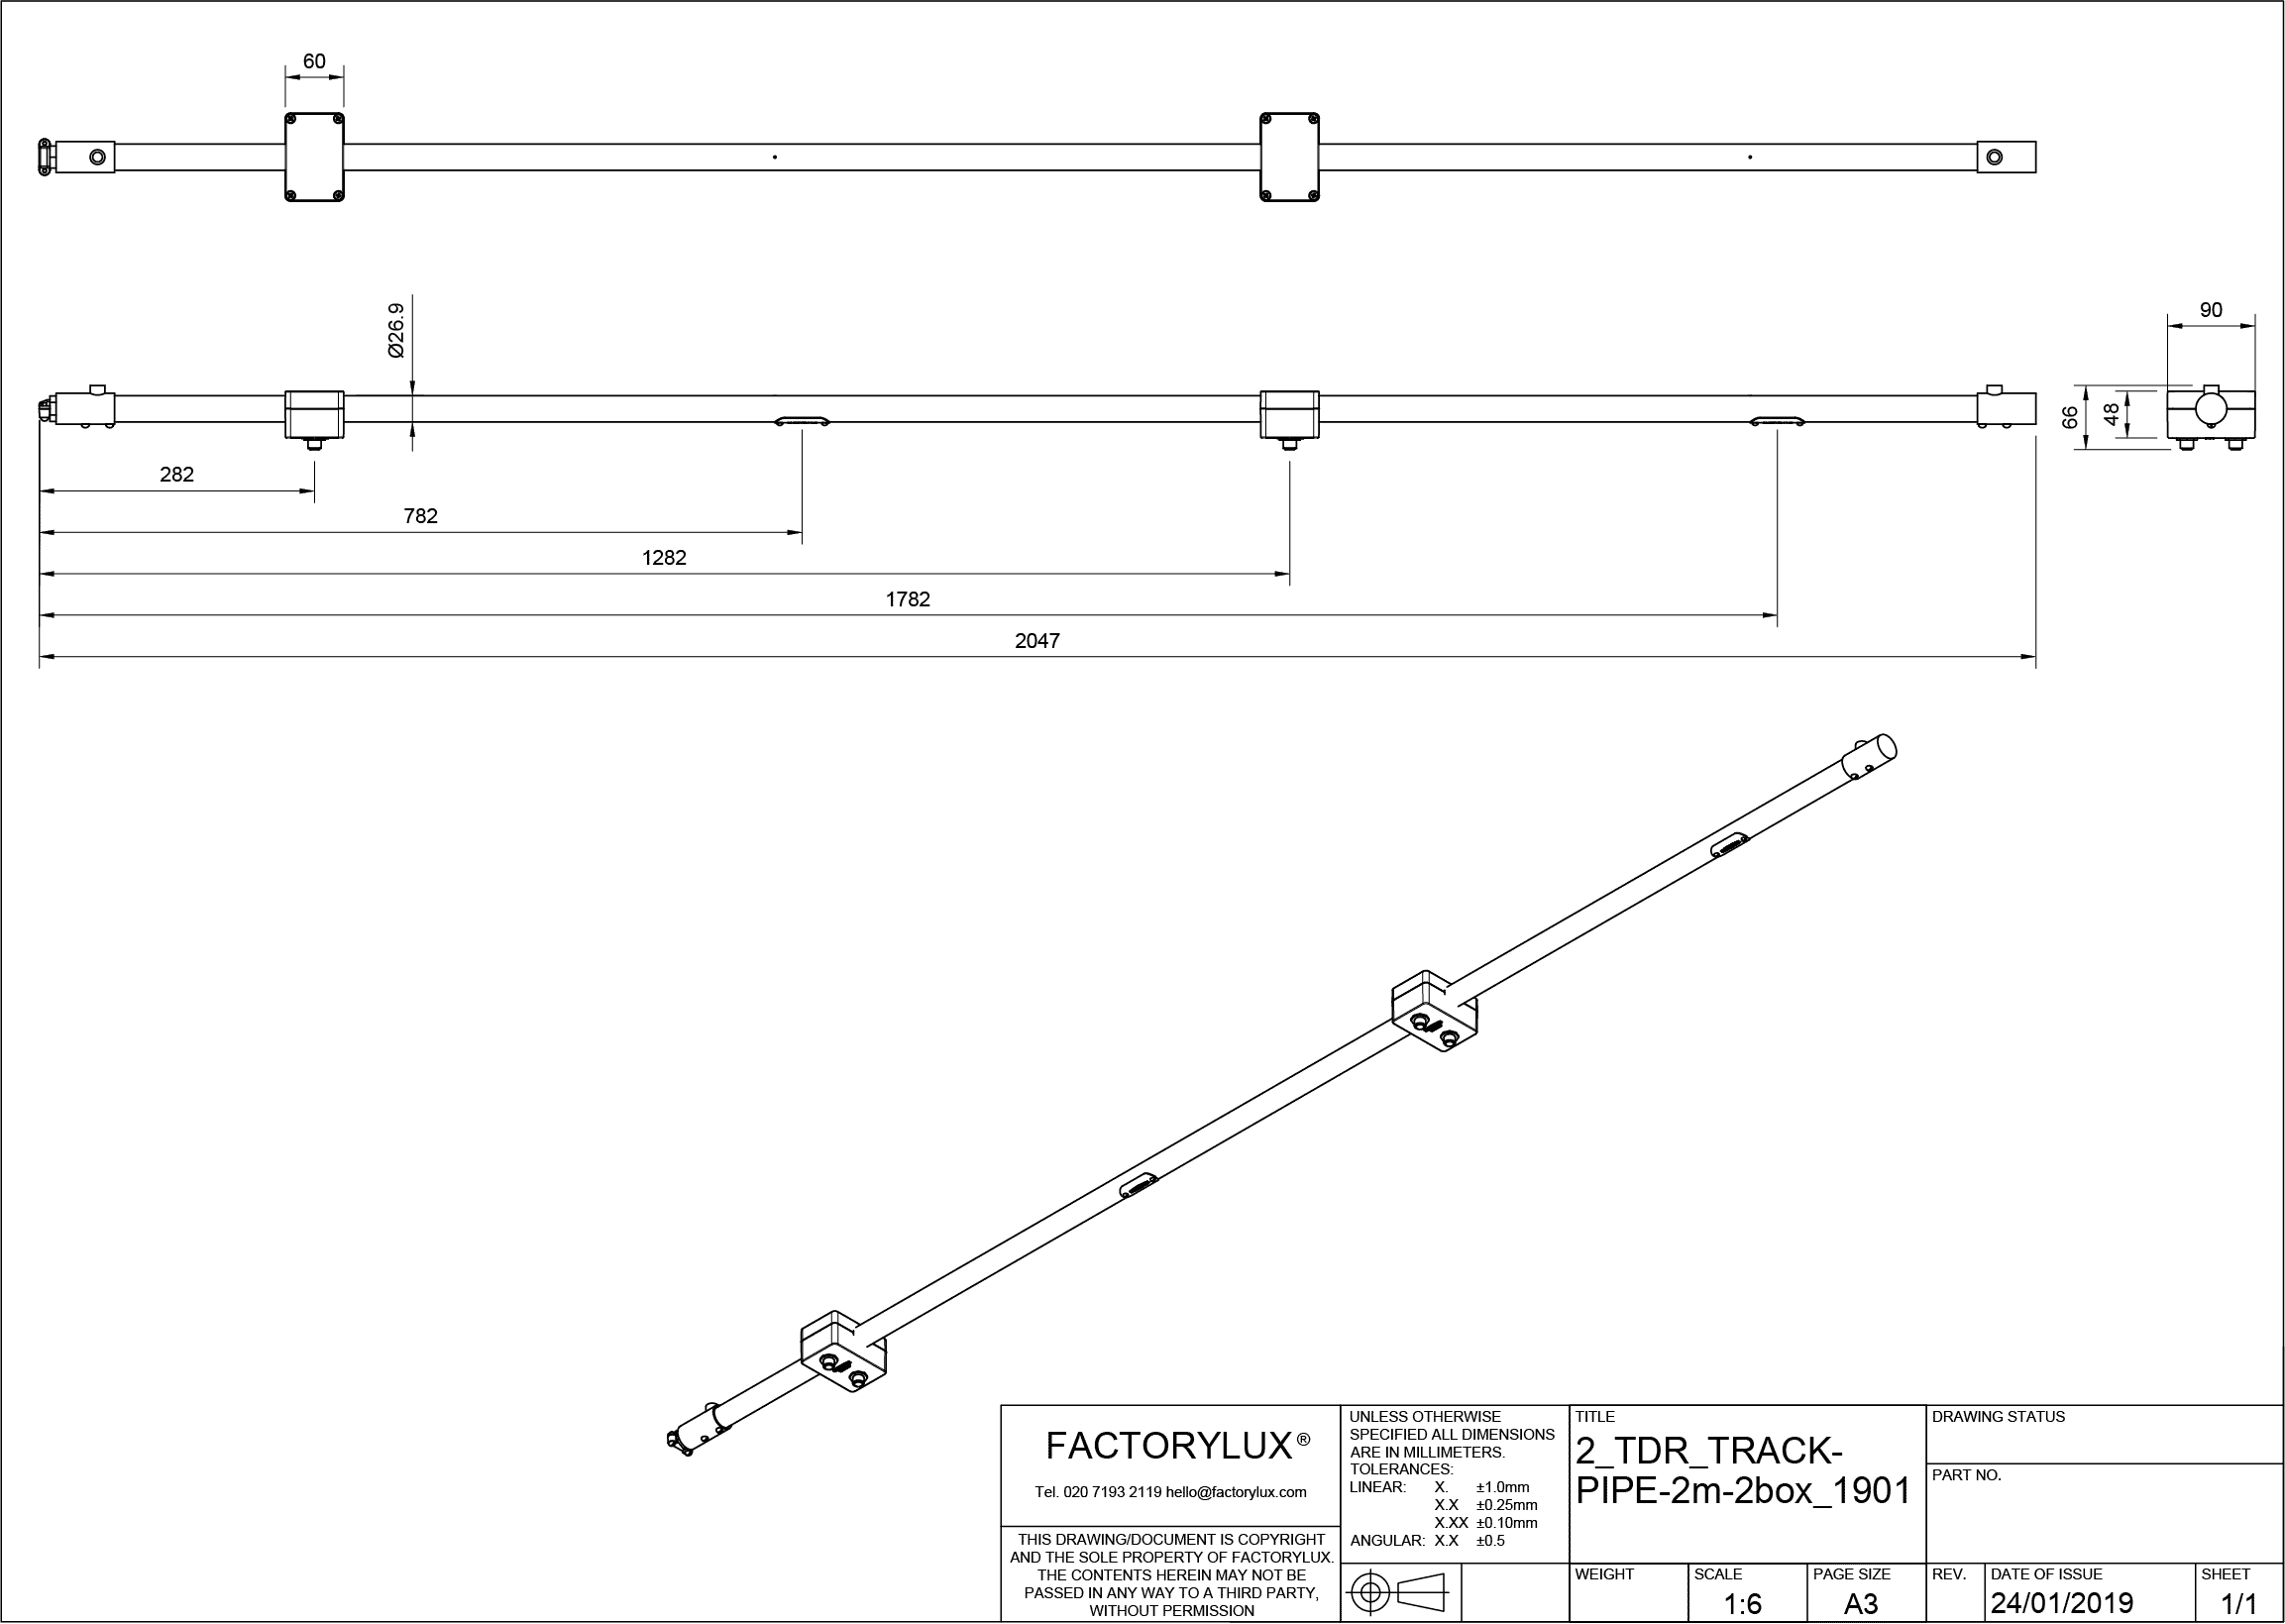 DRAWING-TRACK-PIPE